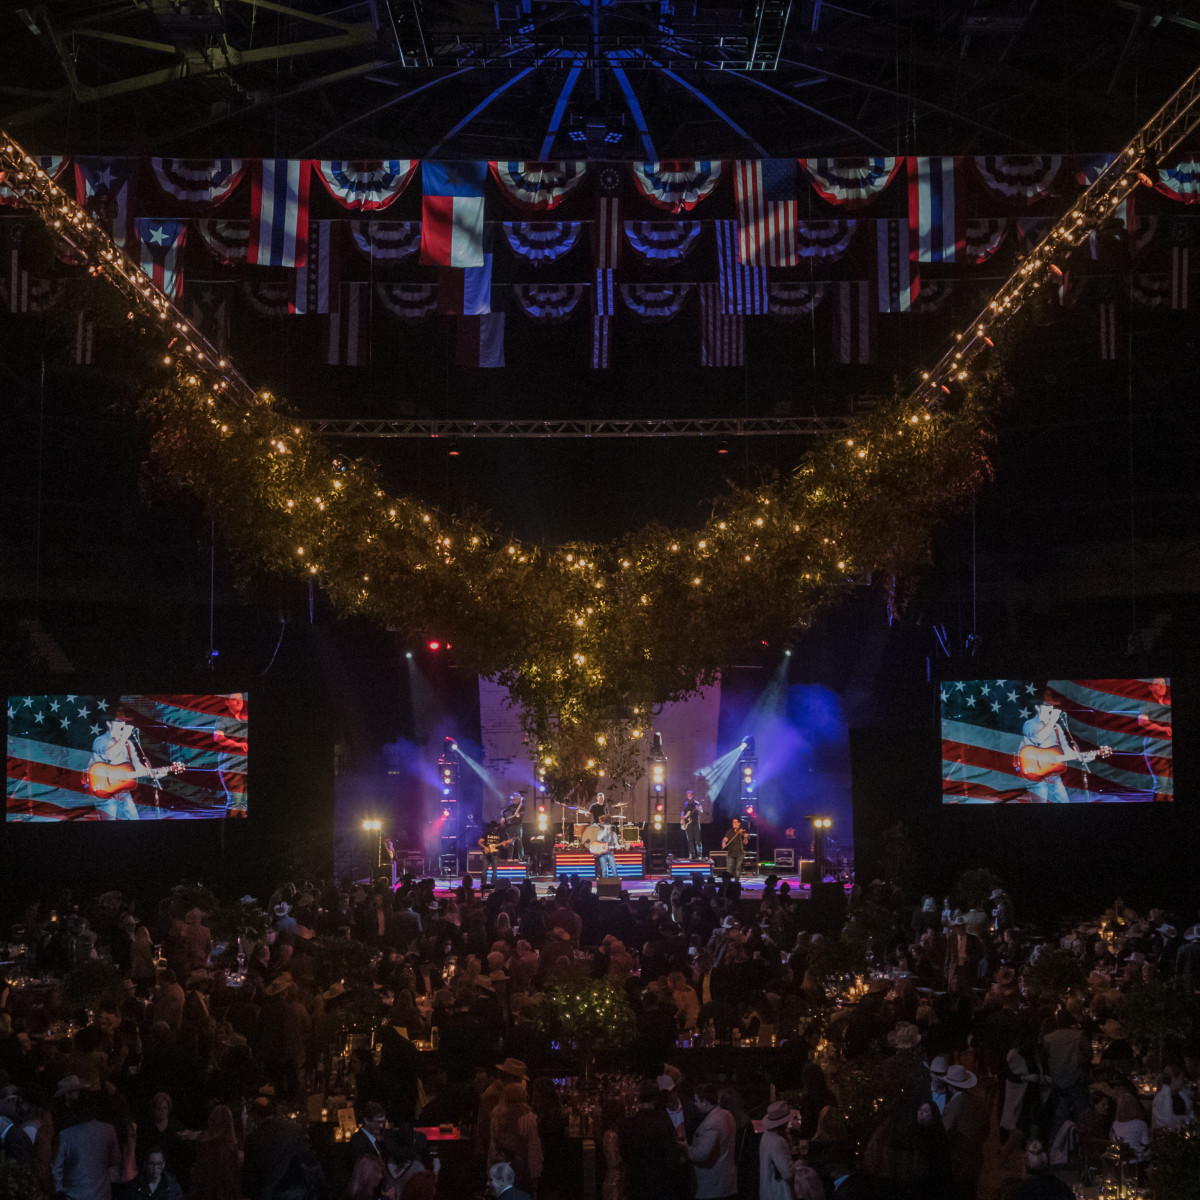 Fort Worth Stock Show Grand Entry Gala 2019 atmosphere